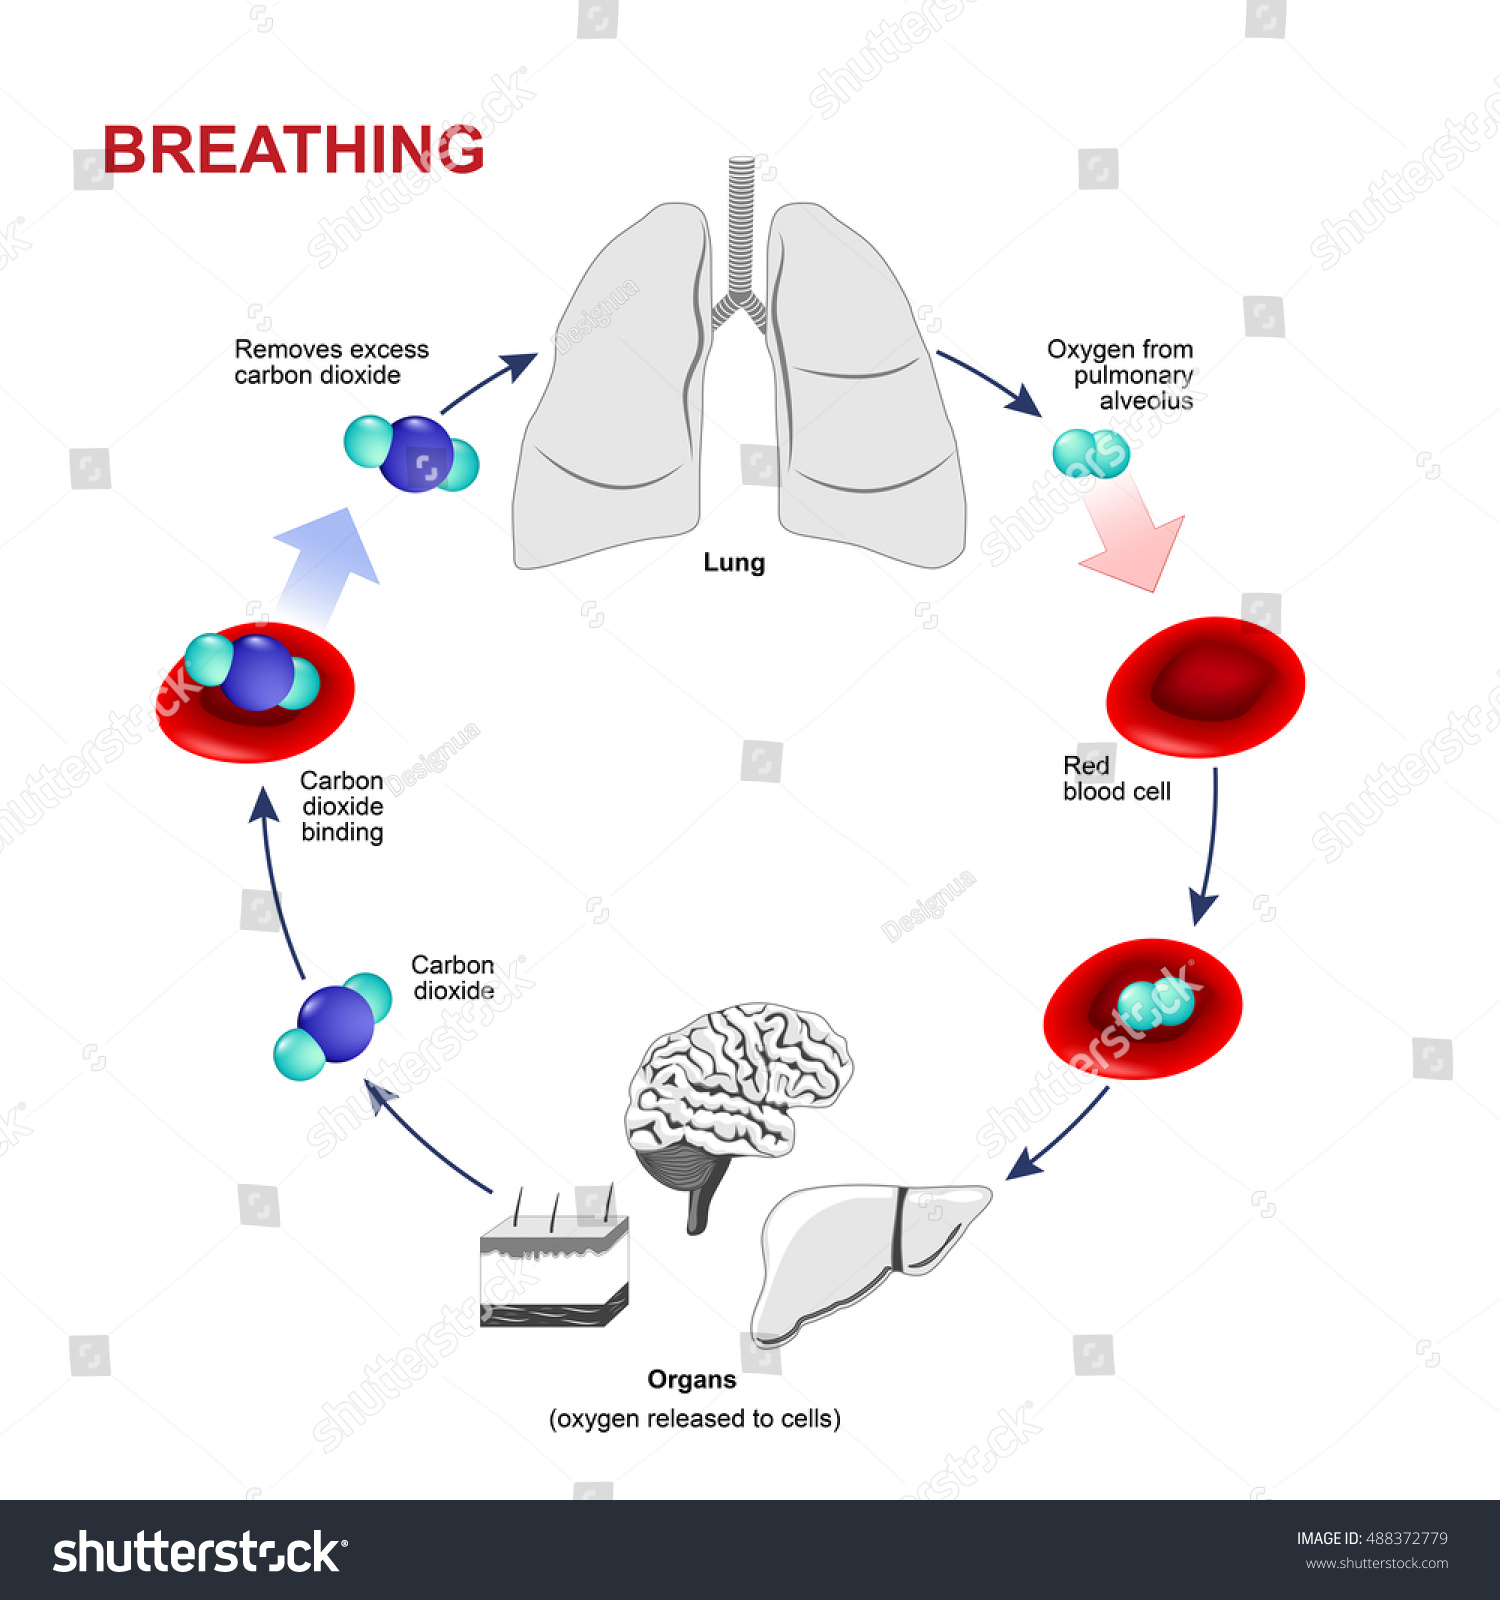 gas exchange in humans essay Nb: gas exchange is the process by which oxygen reaches cells and waste products are removed, don't confuse with respiration which is energy production in cells.